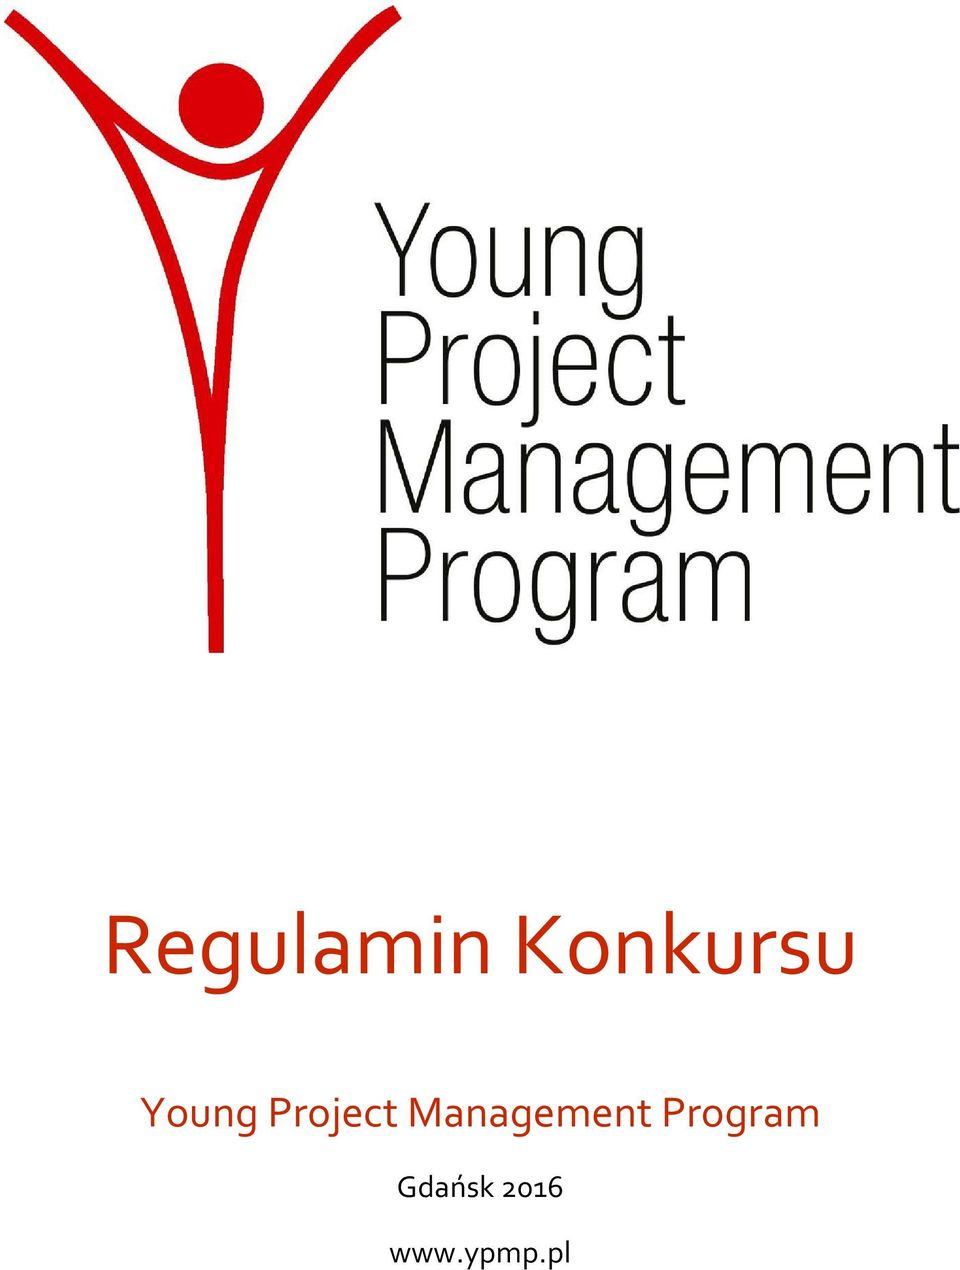 Management Program